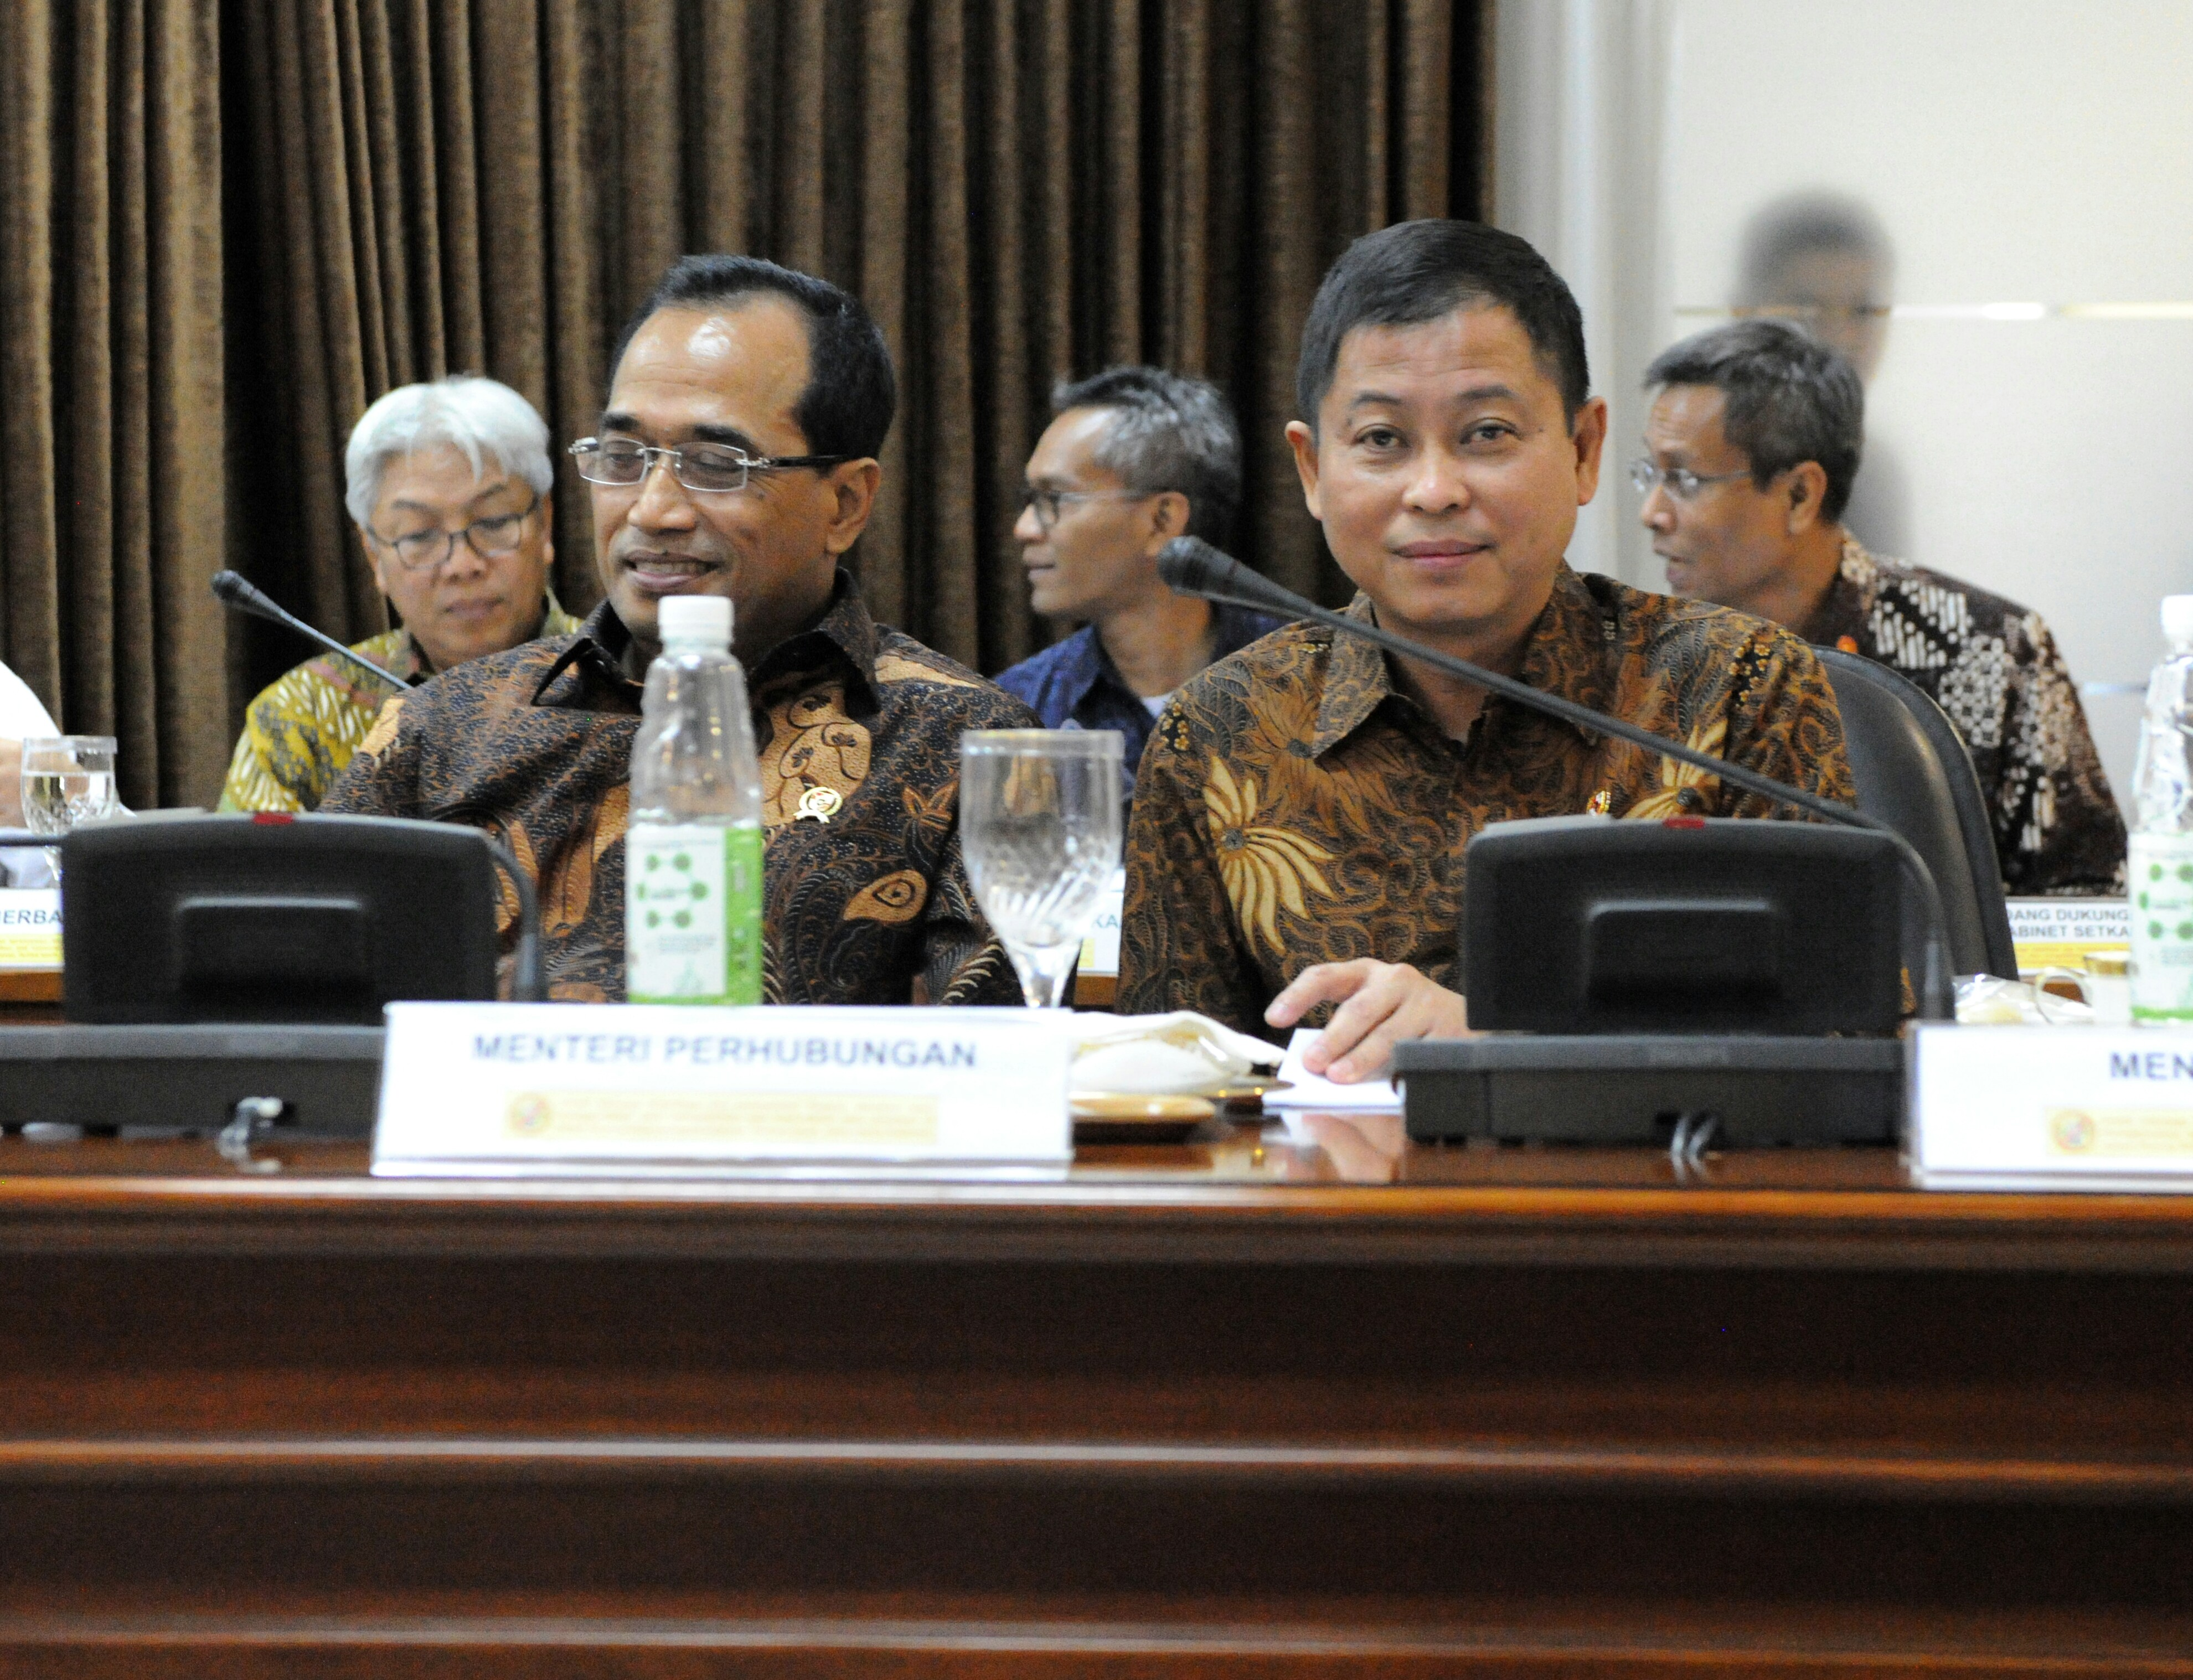 Minister of Energy and Mineral Resources Ignasius Jonan and Minister of Transportation Budi K. Sumadi attend a limited meeting on Wednesday (22/3), at the Presidential Office, Jakarta